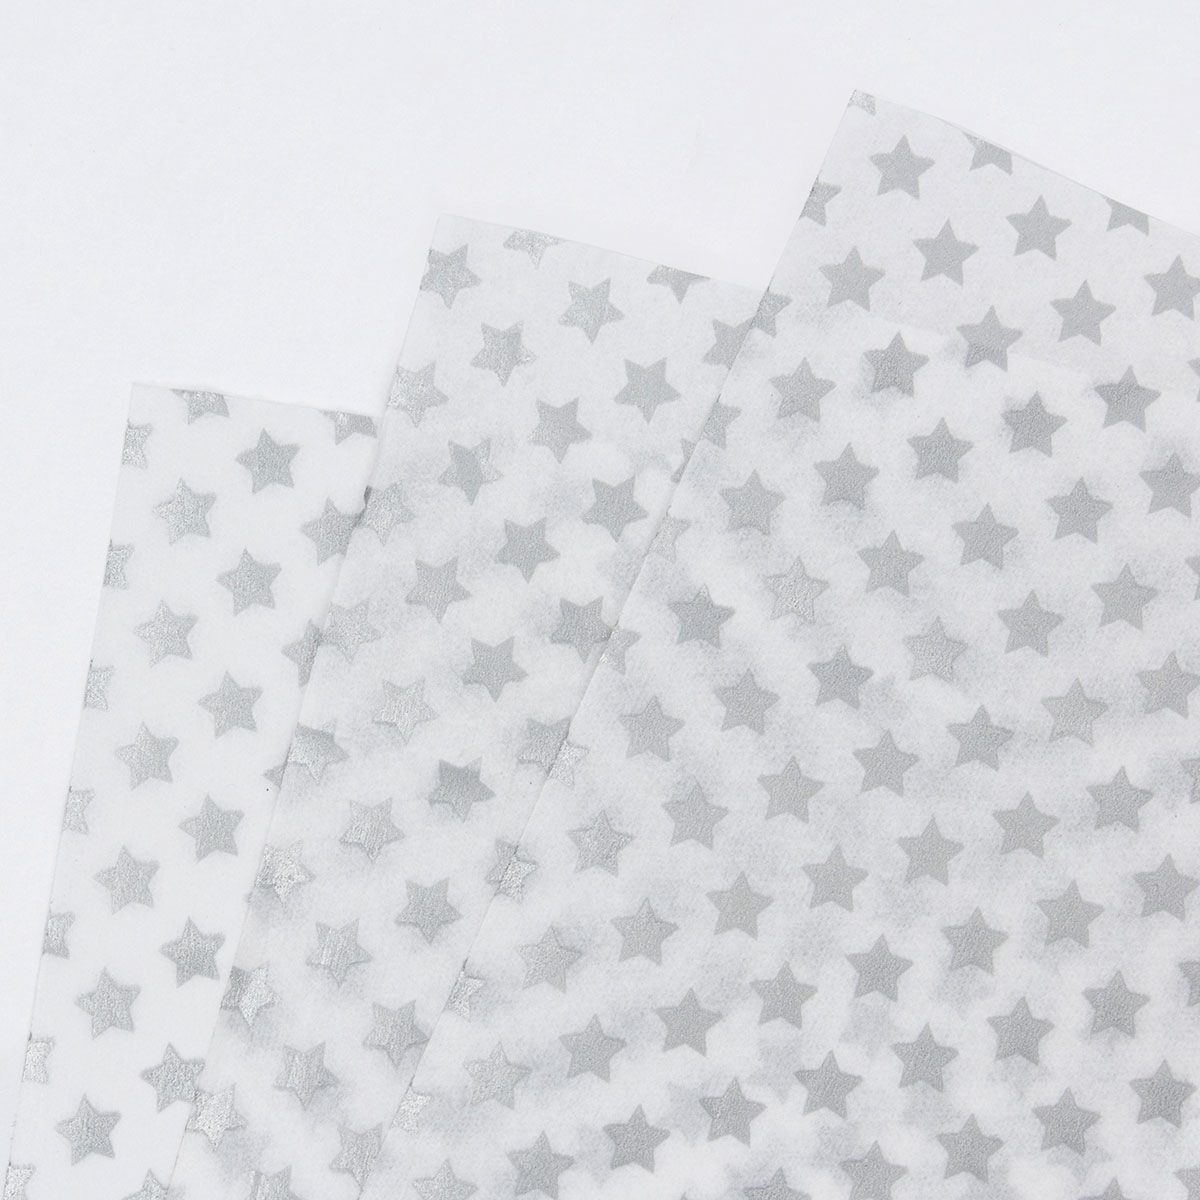 White Tissue Paper With Silver Stars - 7 Sheets